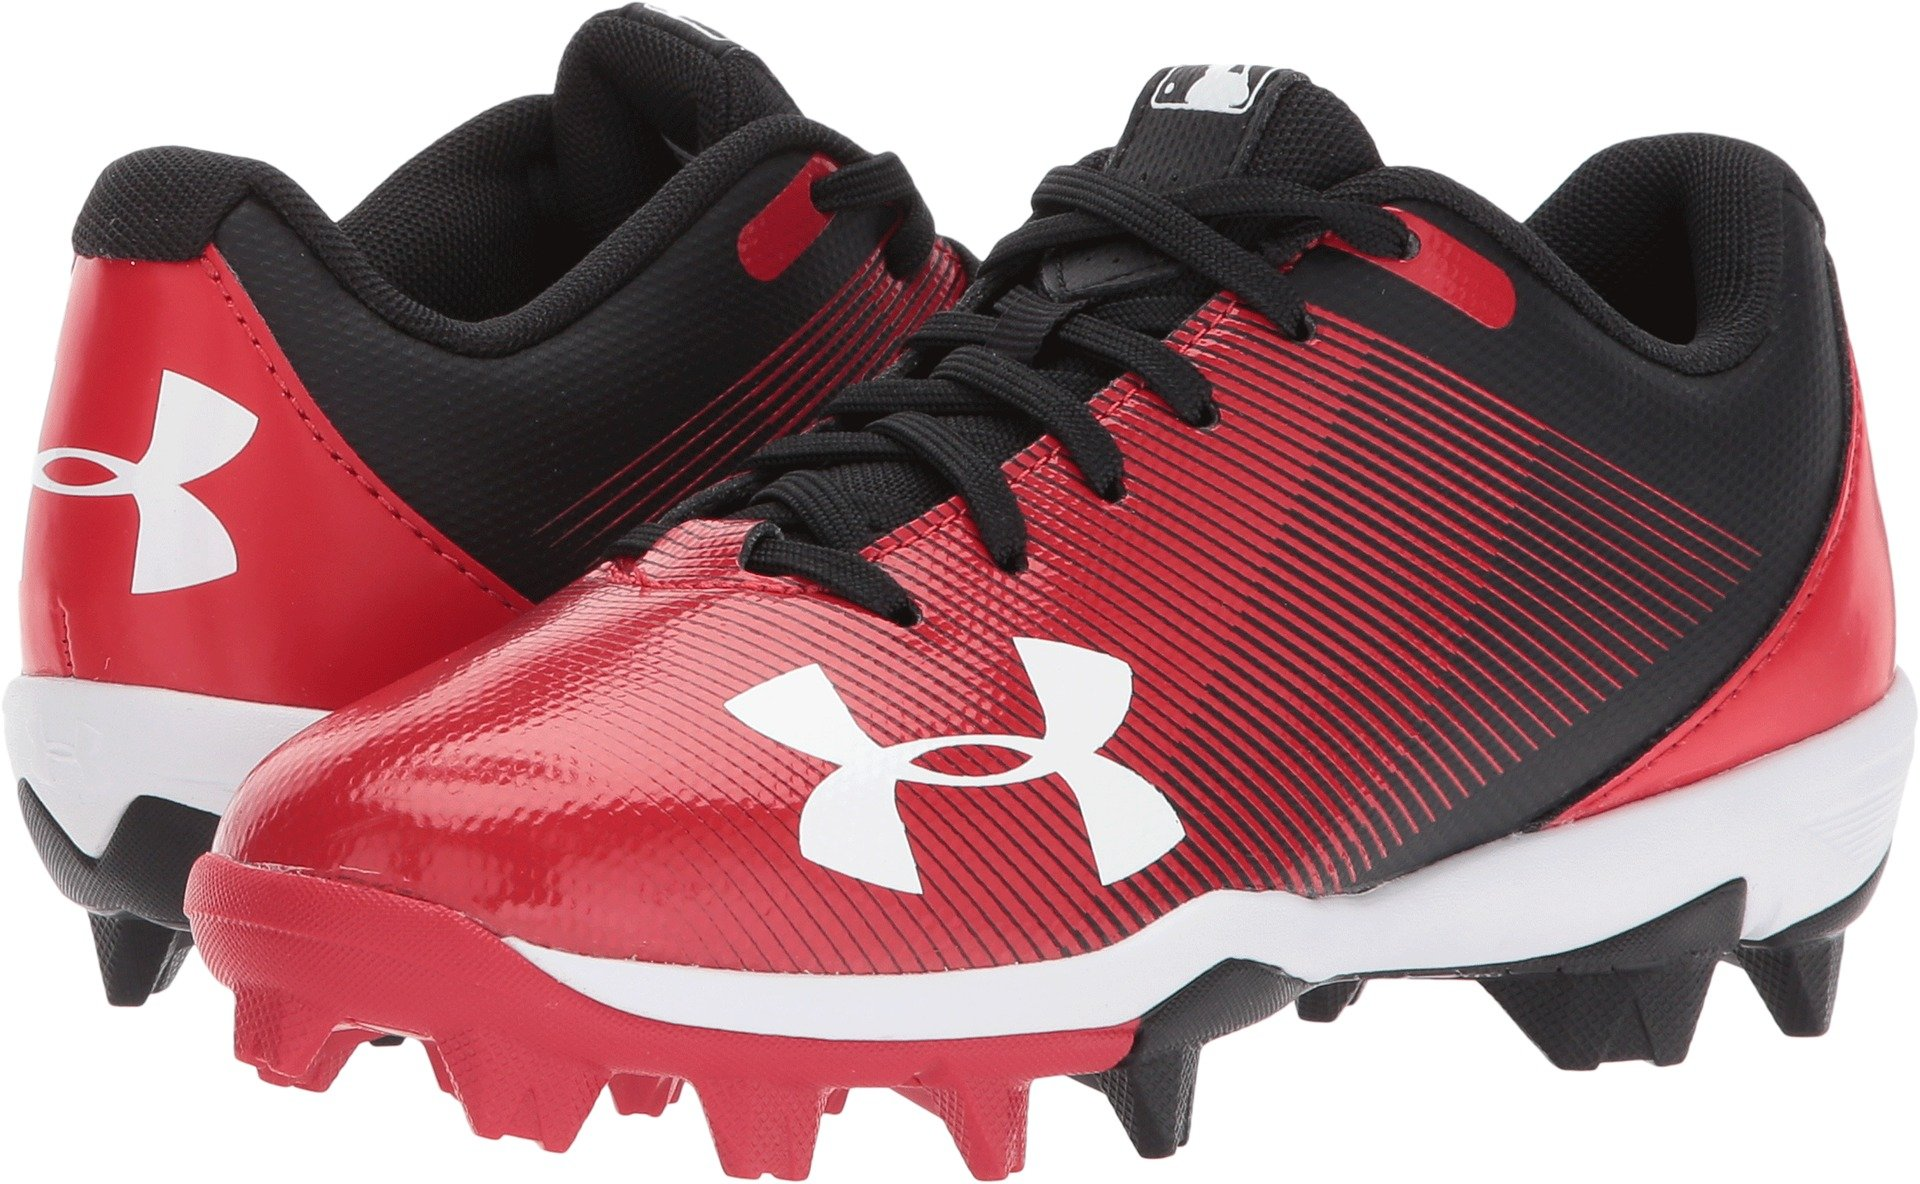 Under Armour Boys Leadoff Low Jr. RM Baseball Shoe, Black (061)/Red, Little Kid 11K US by Under Armour